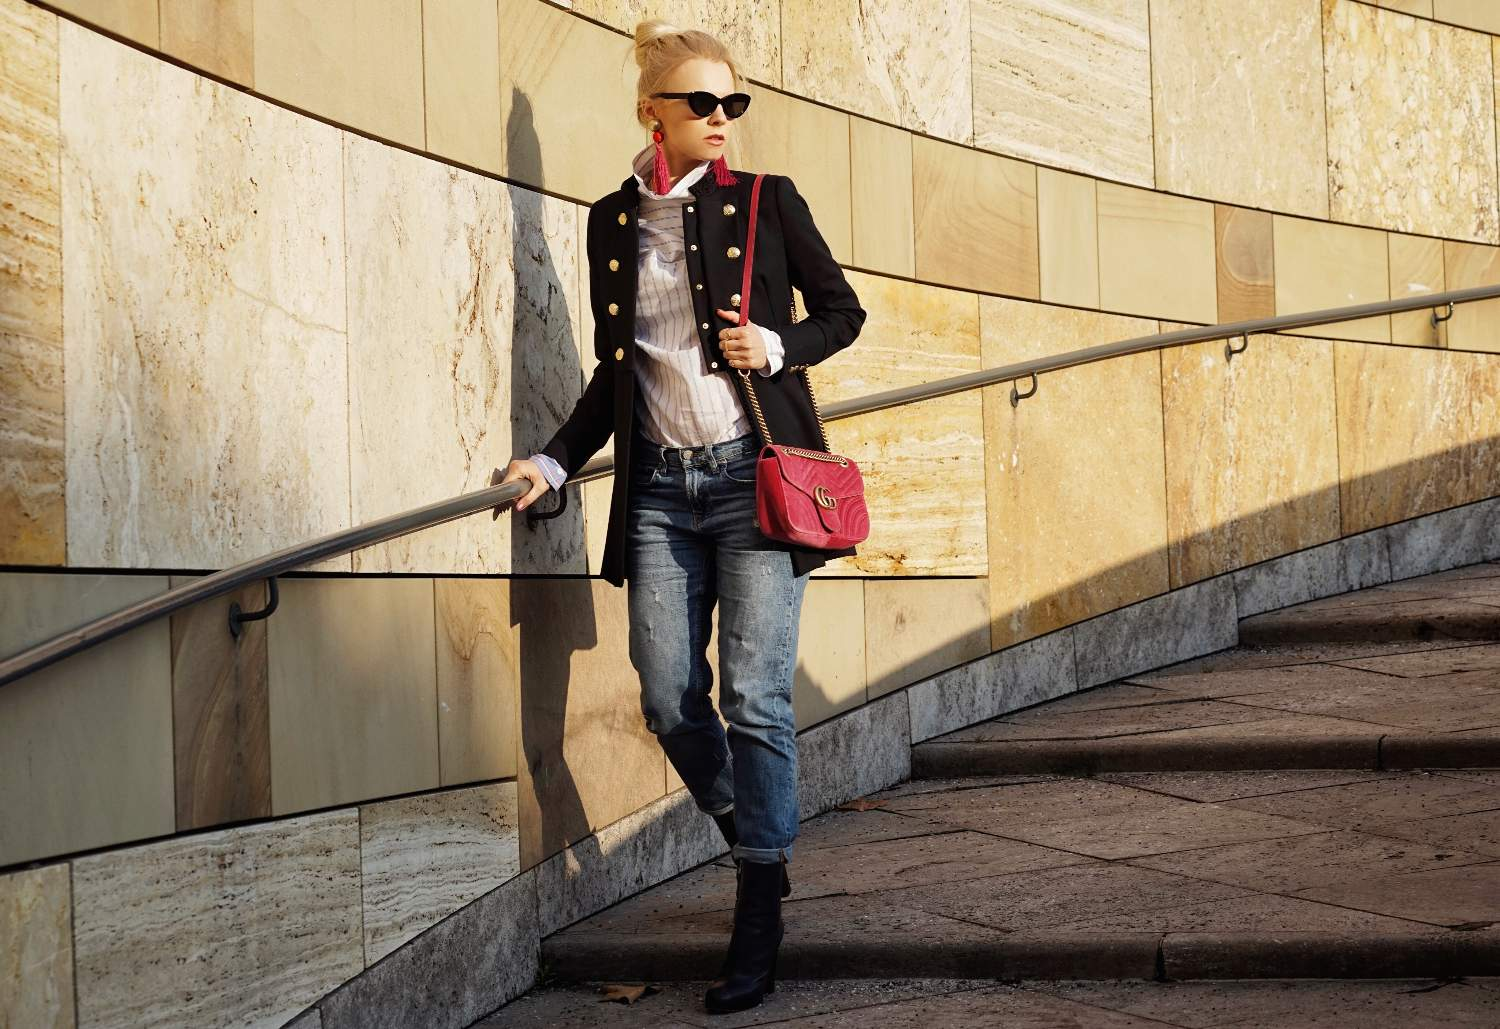 Jeans and Blazer with sunglasses